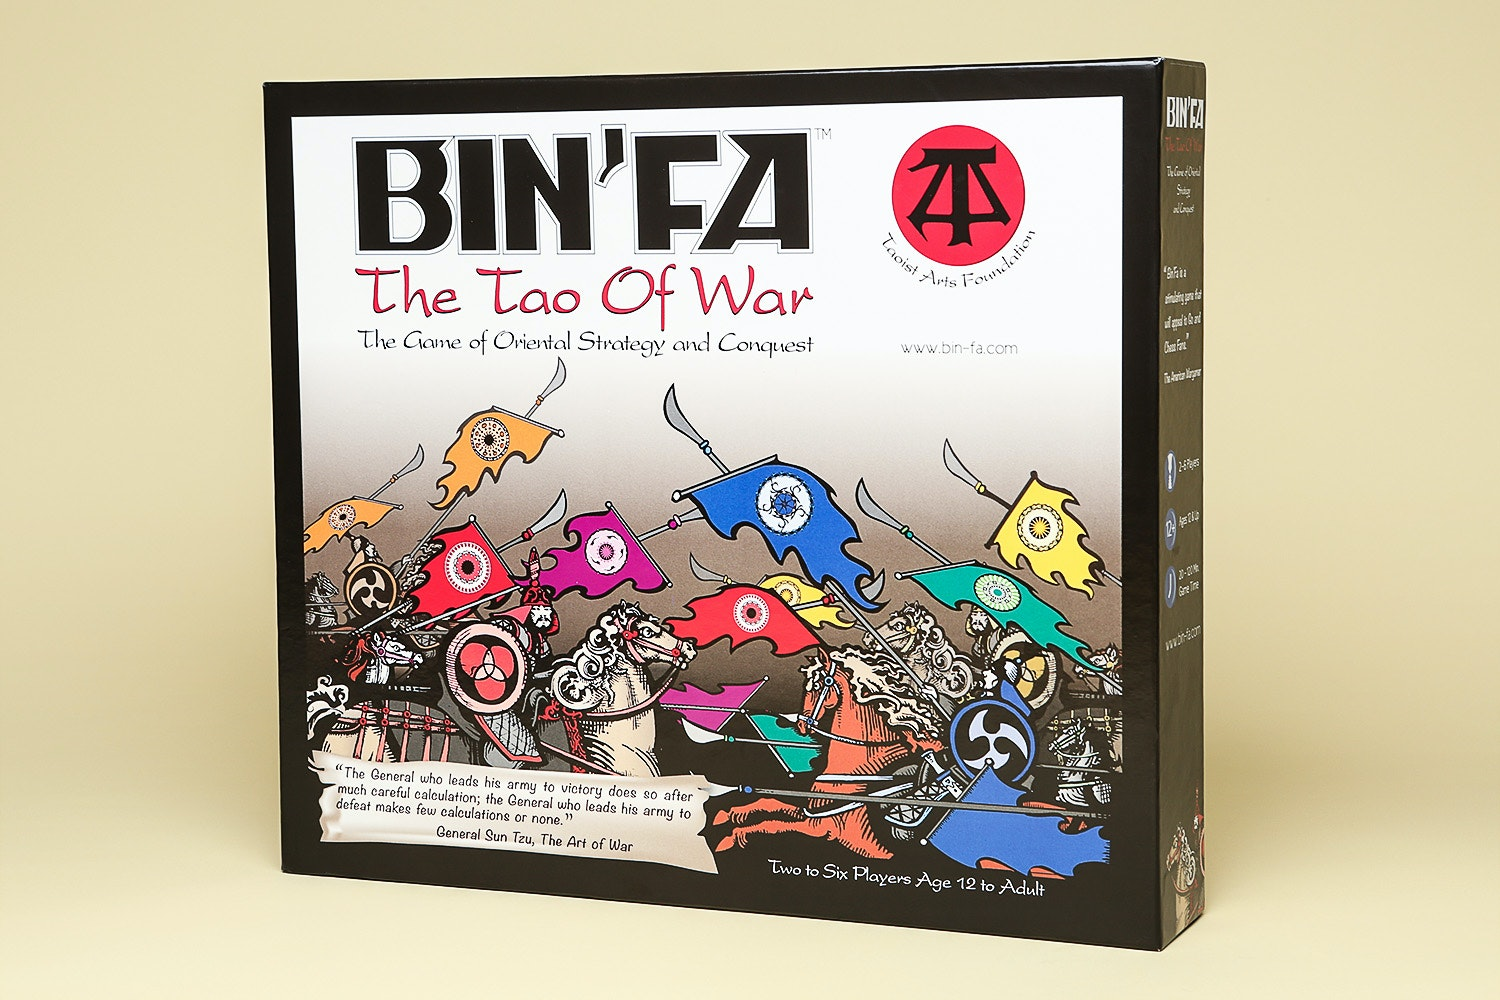 Bin'Fa, The Game of Oriental Strategy & Conquest